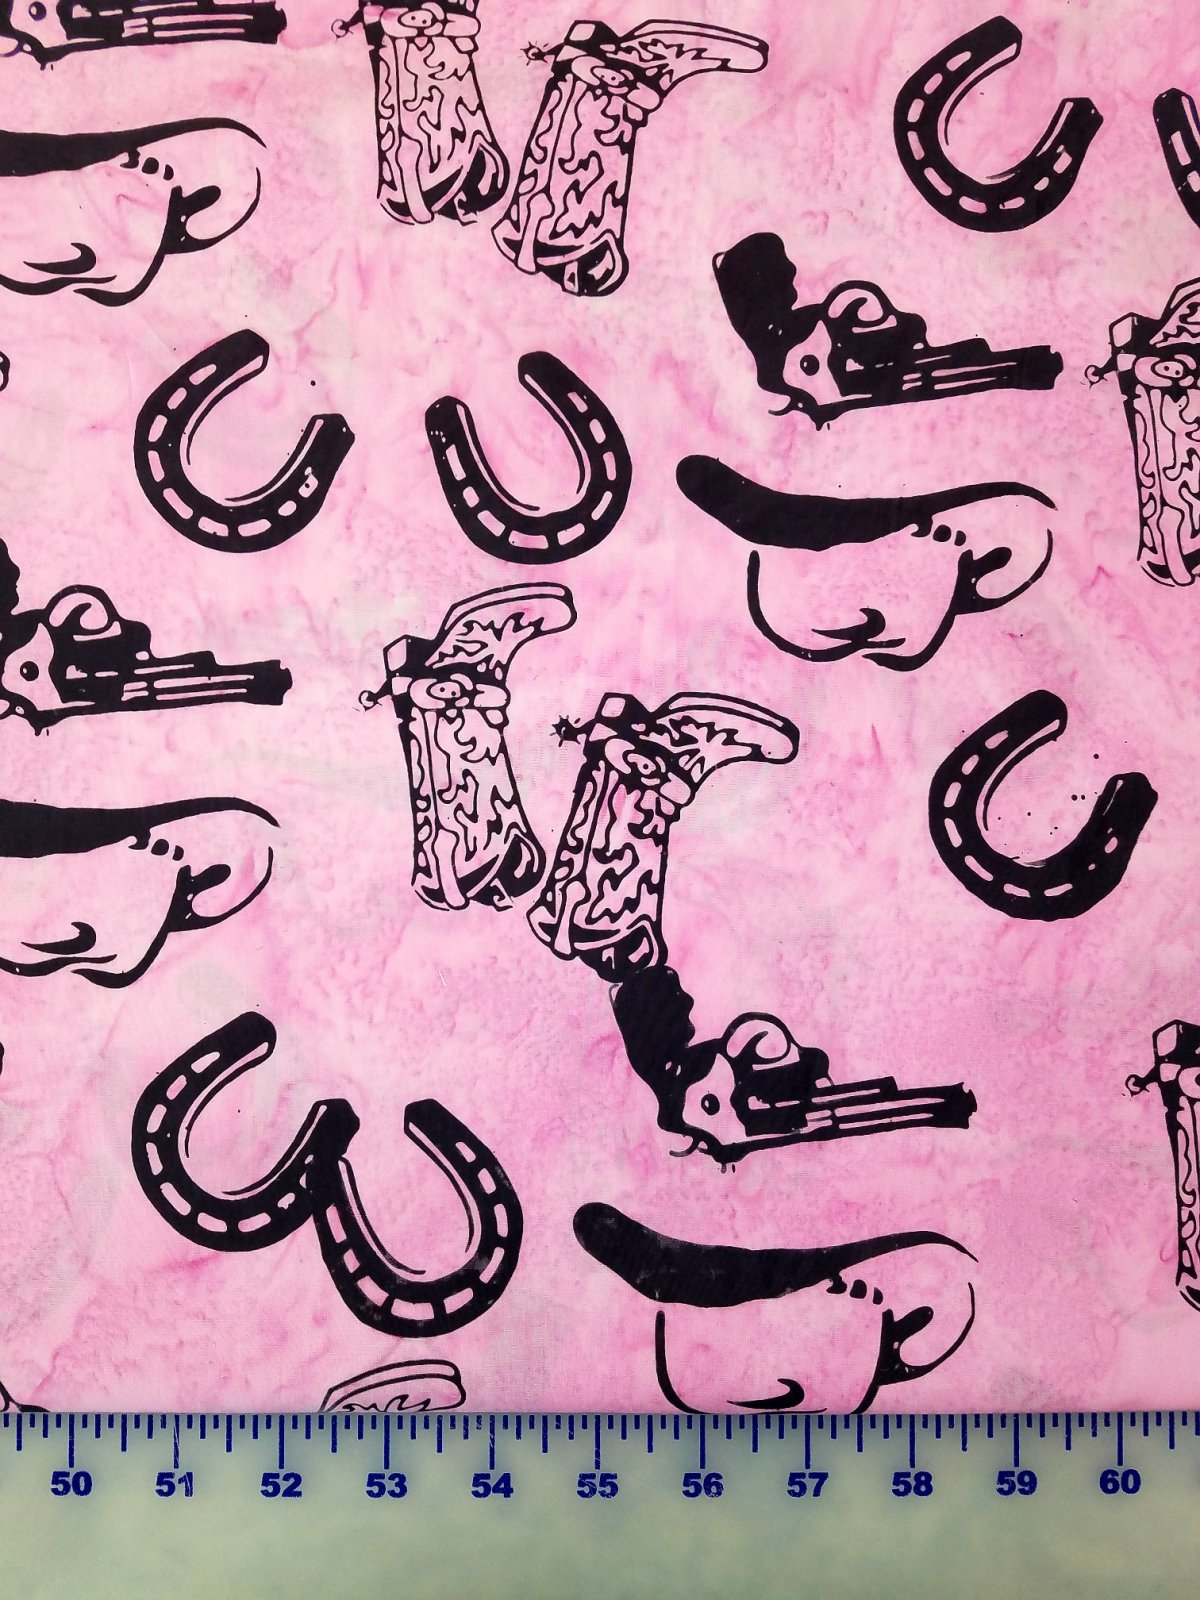 P2080-482 Hoffman of California Cowboy Boots Pistols Horseshoes on Pink